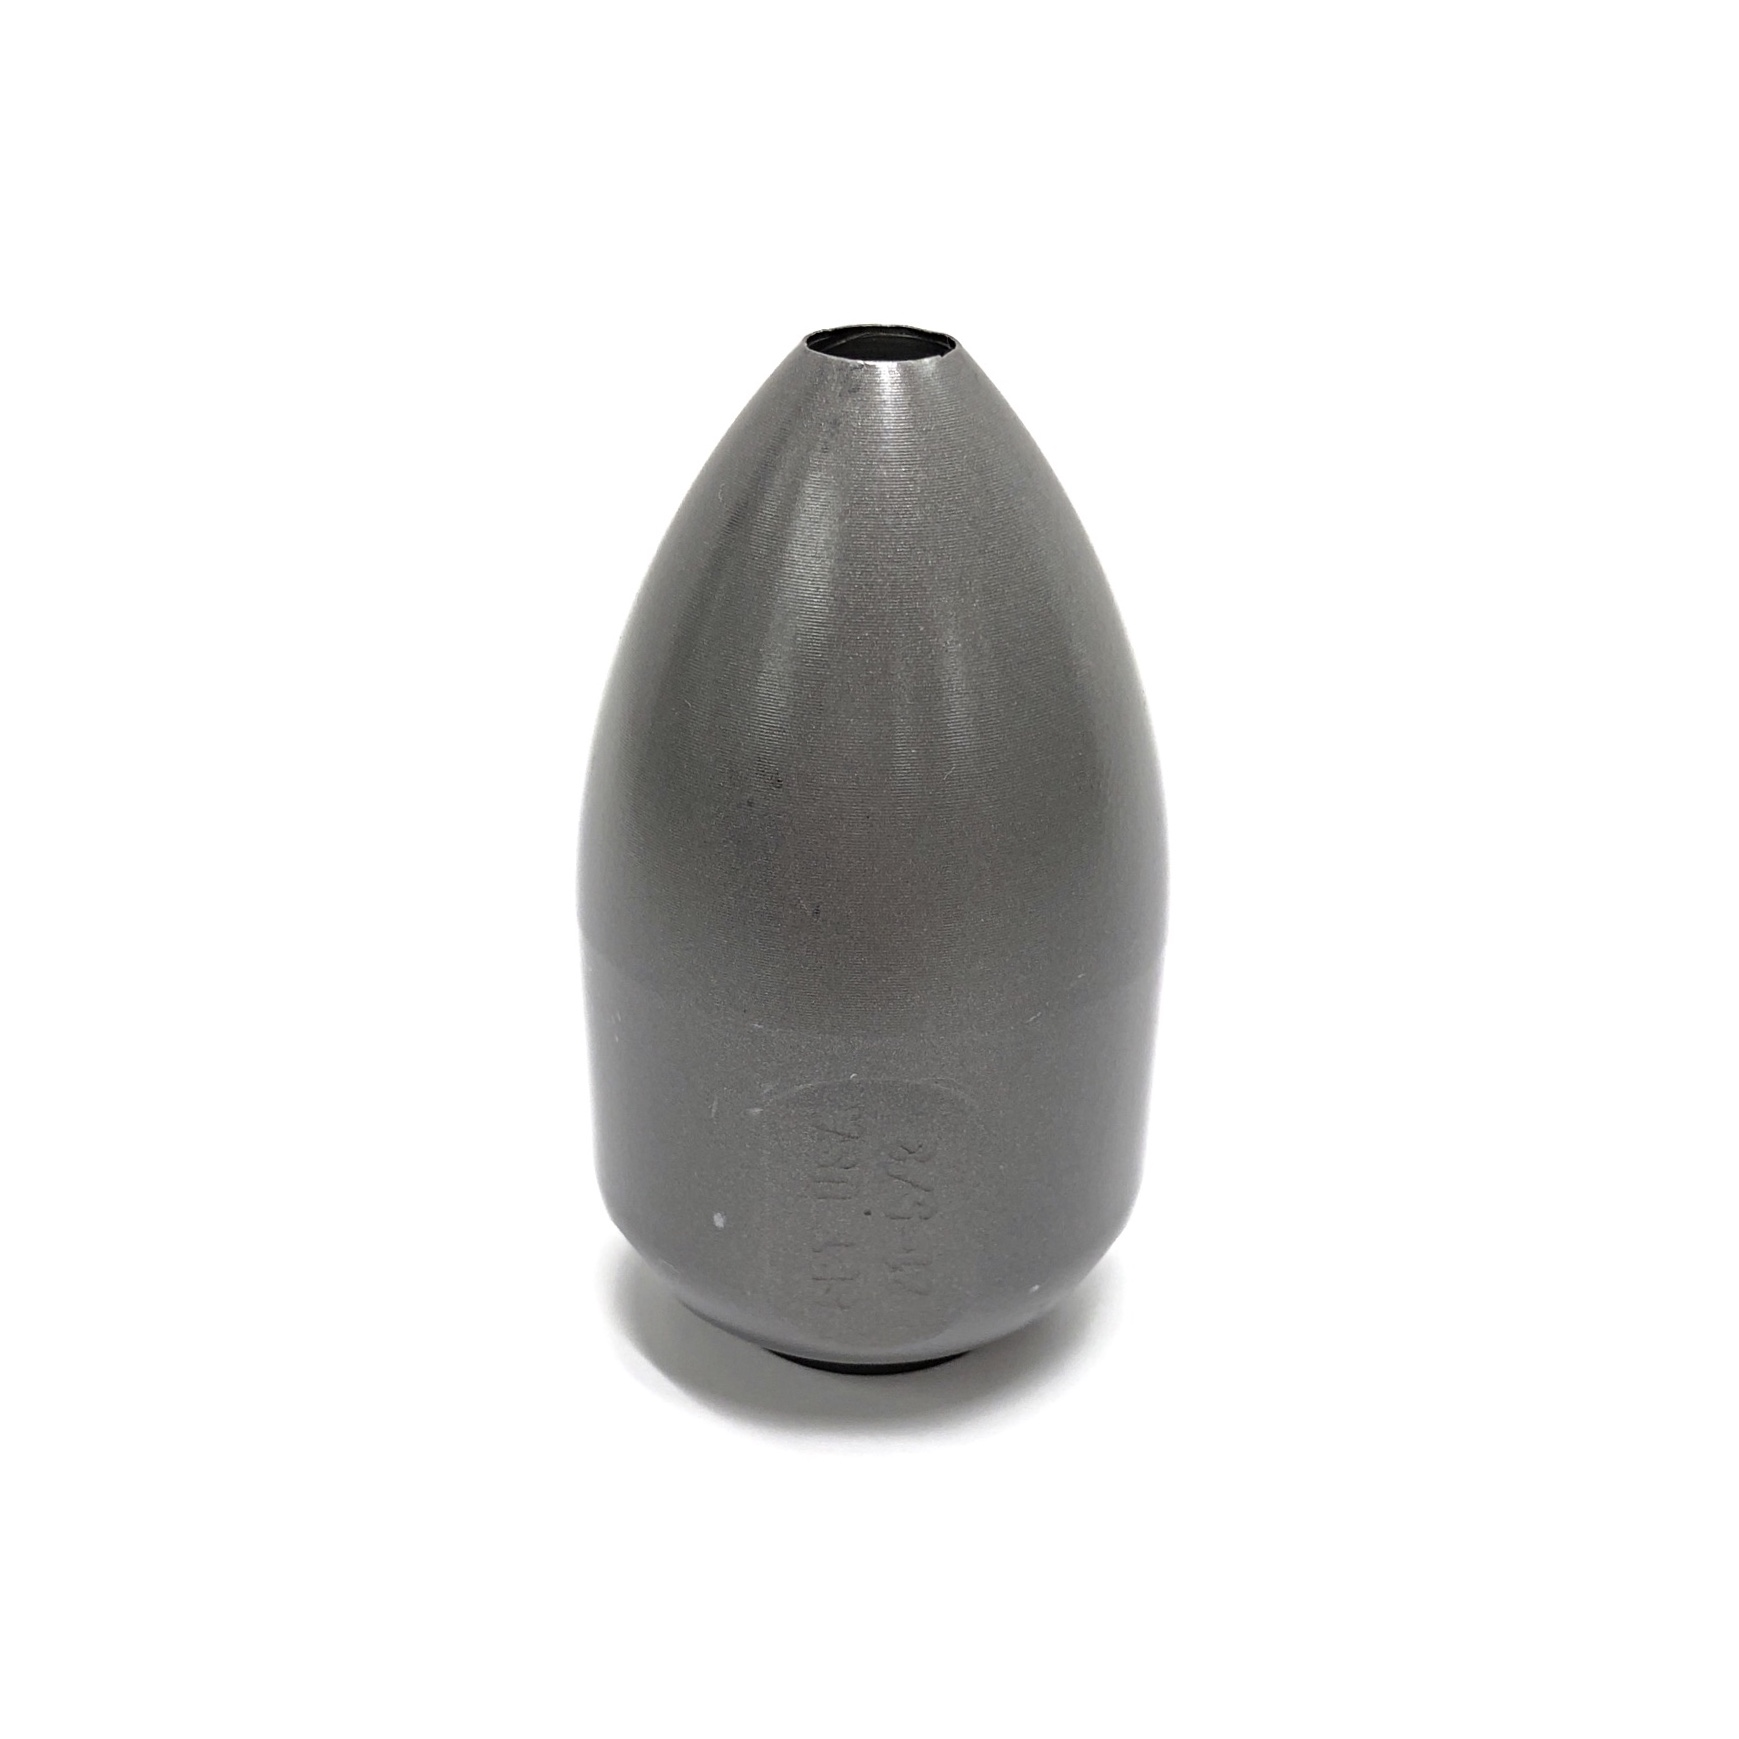 "1/2"" Super Grenade Penetrator Side View"